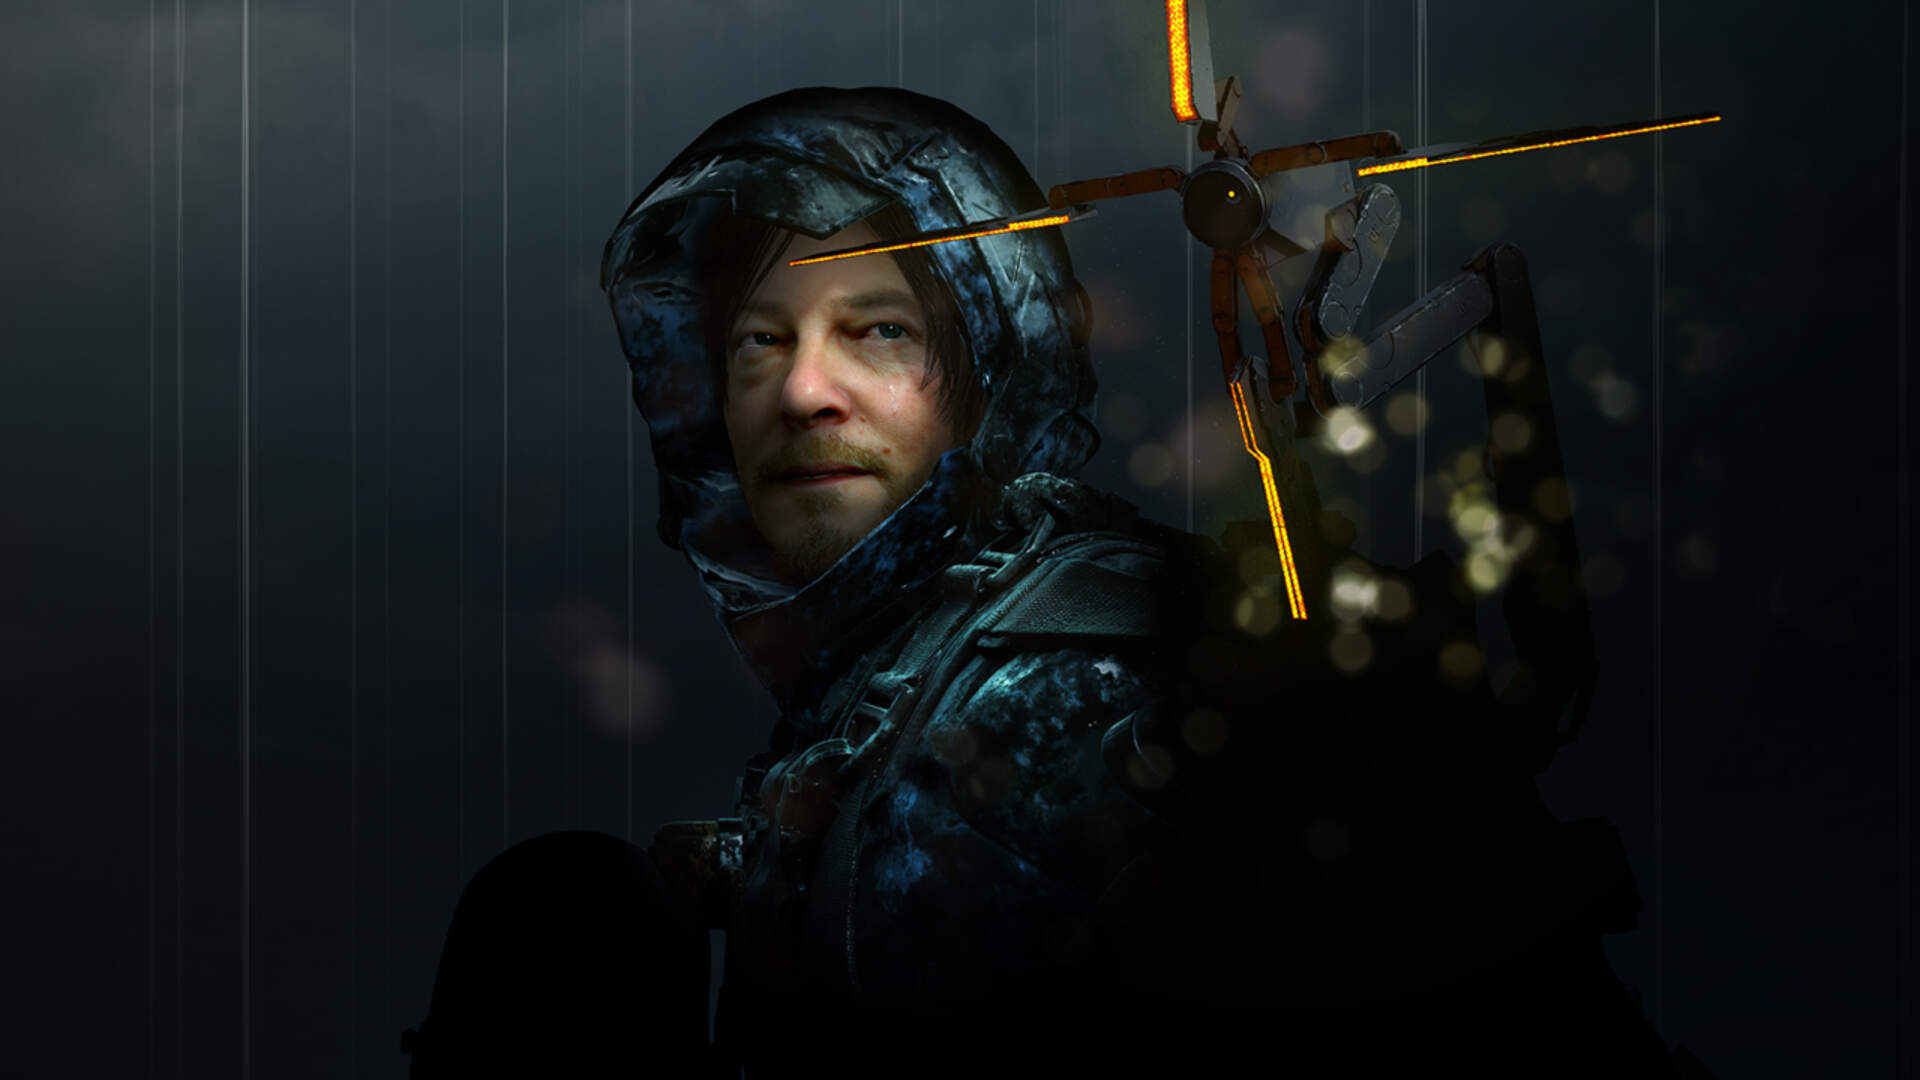 Death Stranding Review: The Boldest, And Most Perplexing, Game of 2019